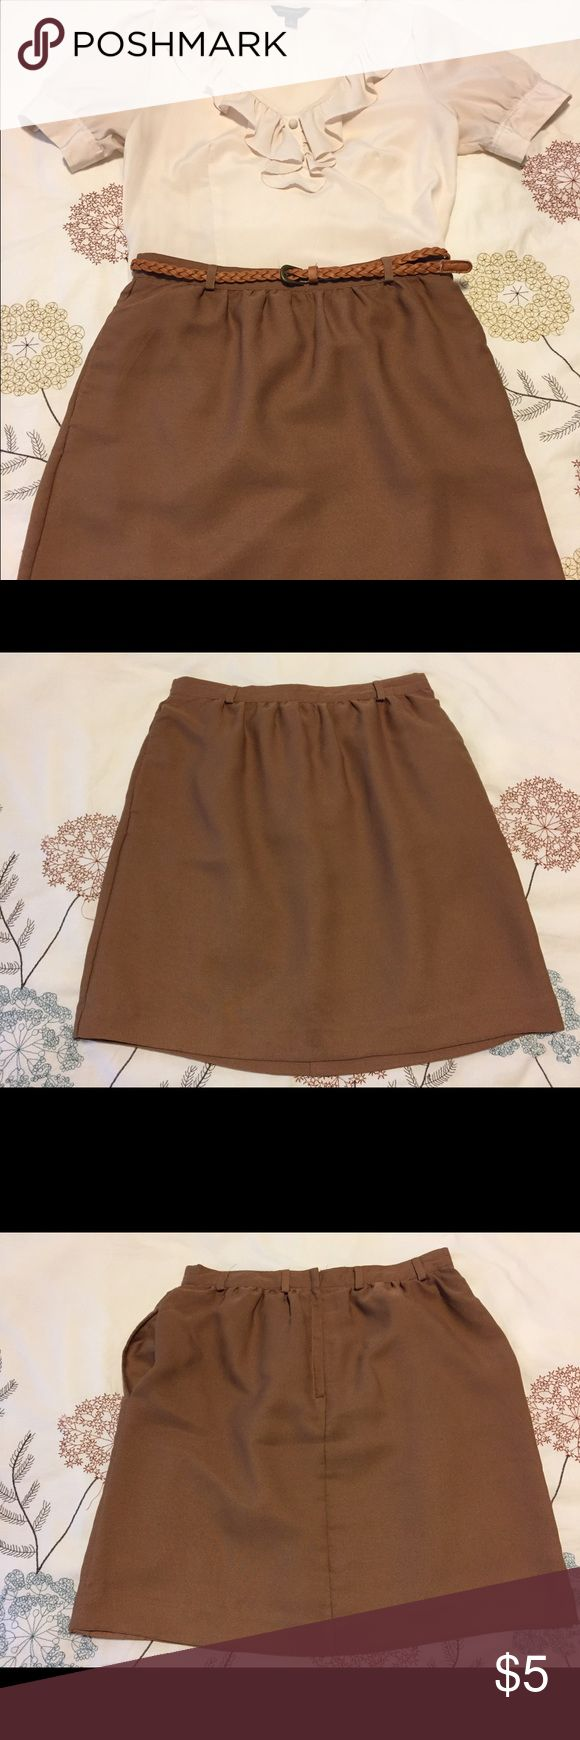 Brown pencil skirt (Forever 21) This brown pencil skirt has pockets! Forever 21, size S, & in excellent condition! Complete this look with my Ruffle Cream Blouse listing! Forever 21 Skirts Pencil